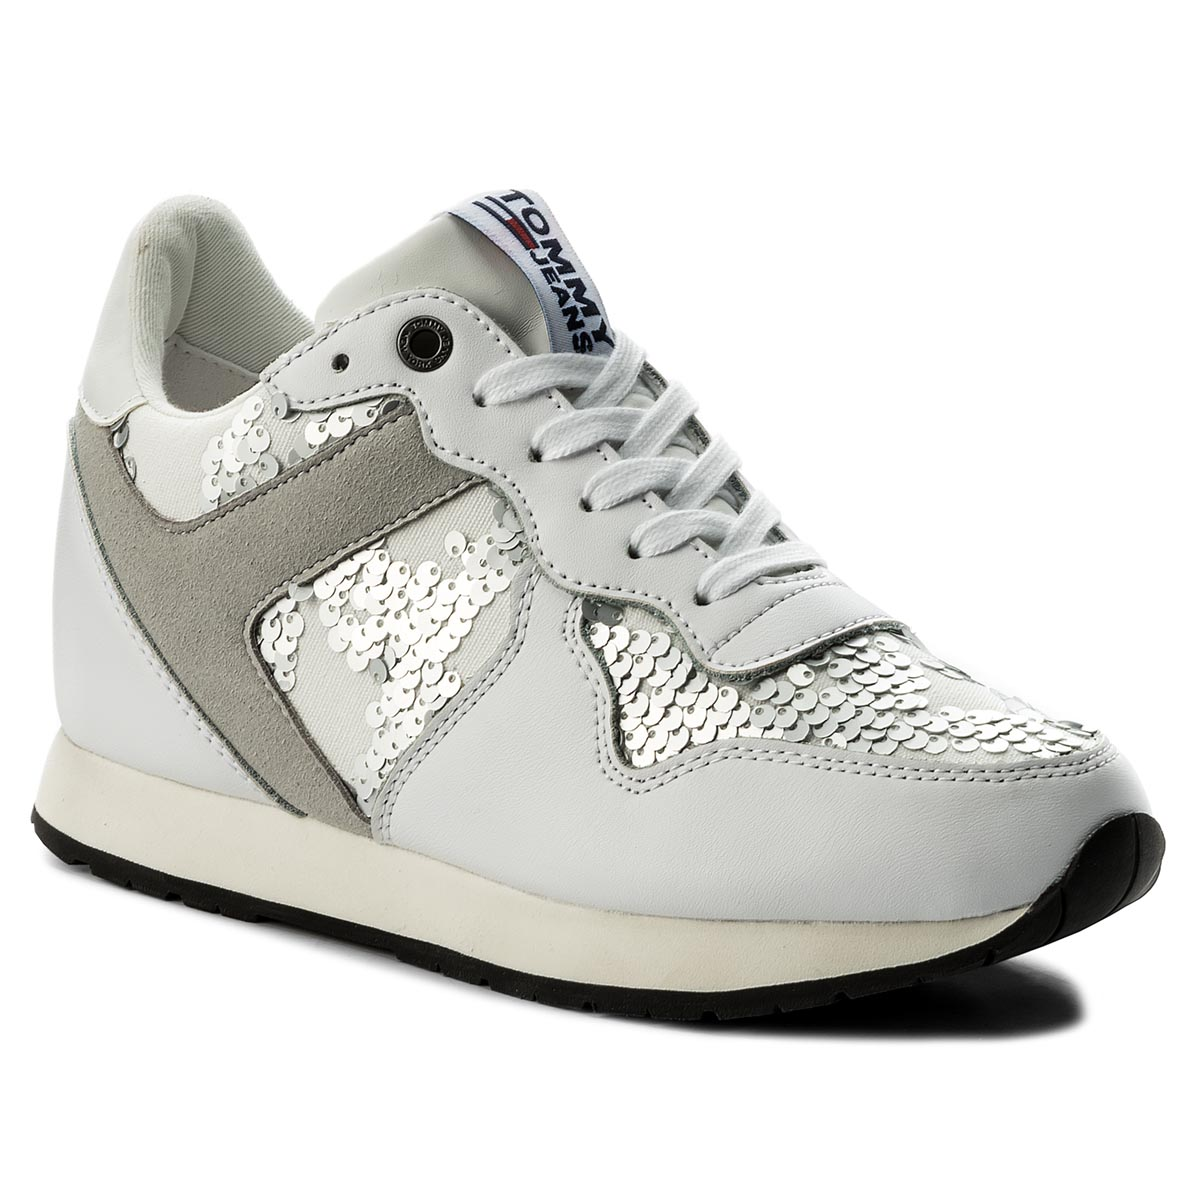 Sneakersy TOMMY JEANS - Tj Wedge Sequin Sneaker FW0FW03301 White 100